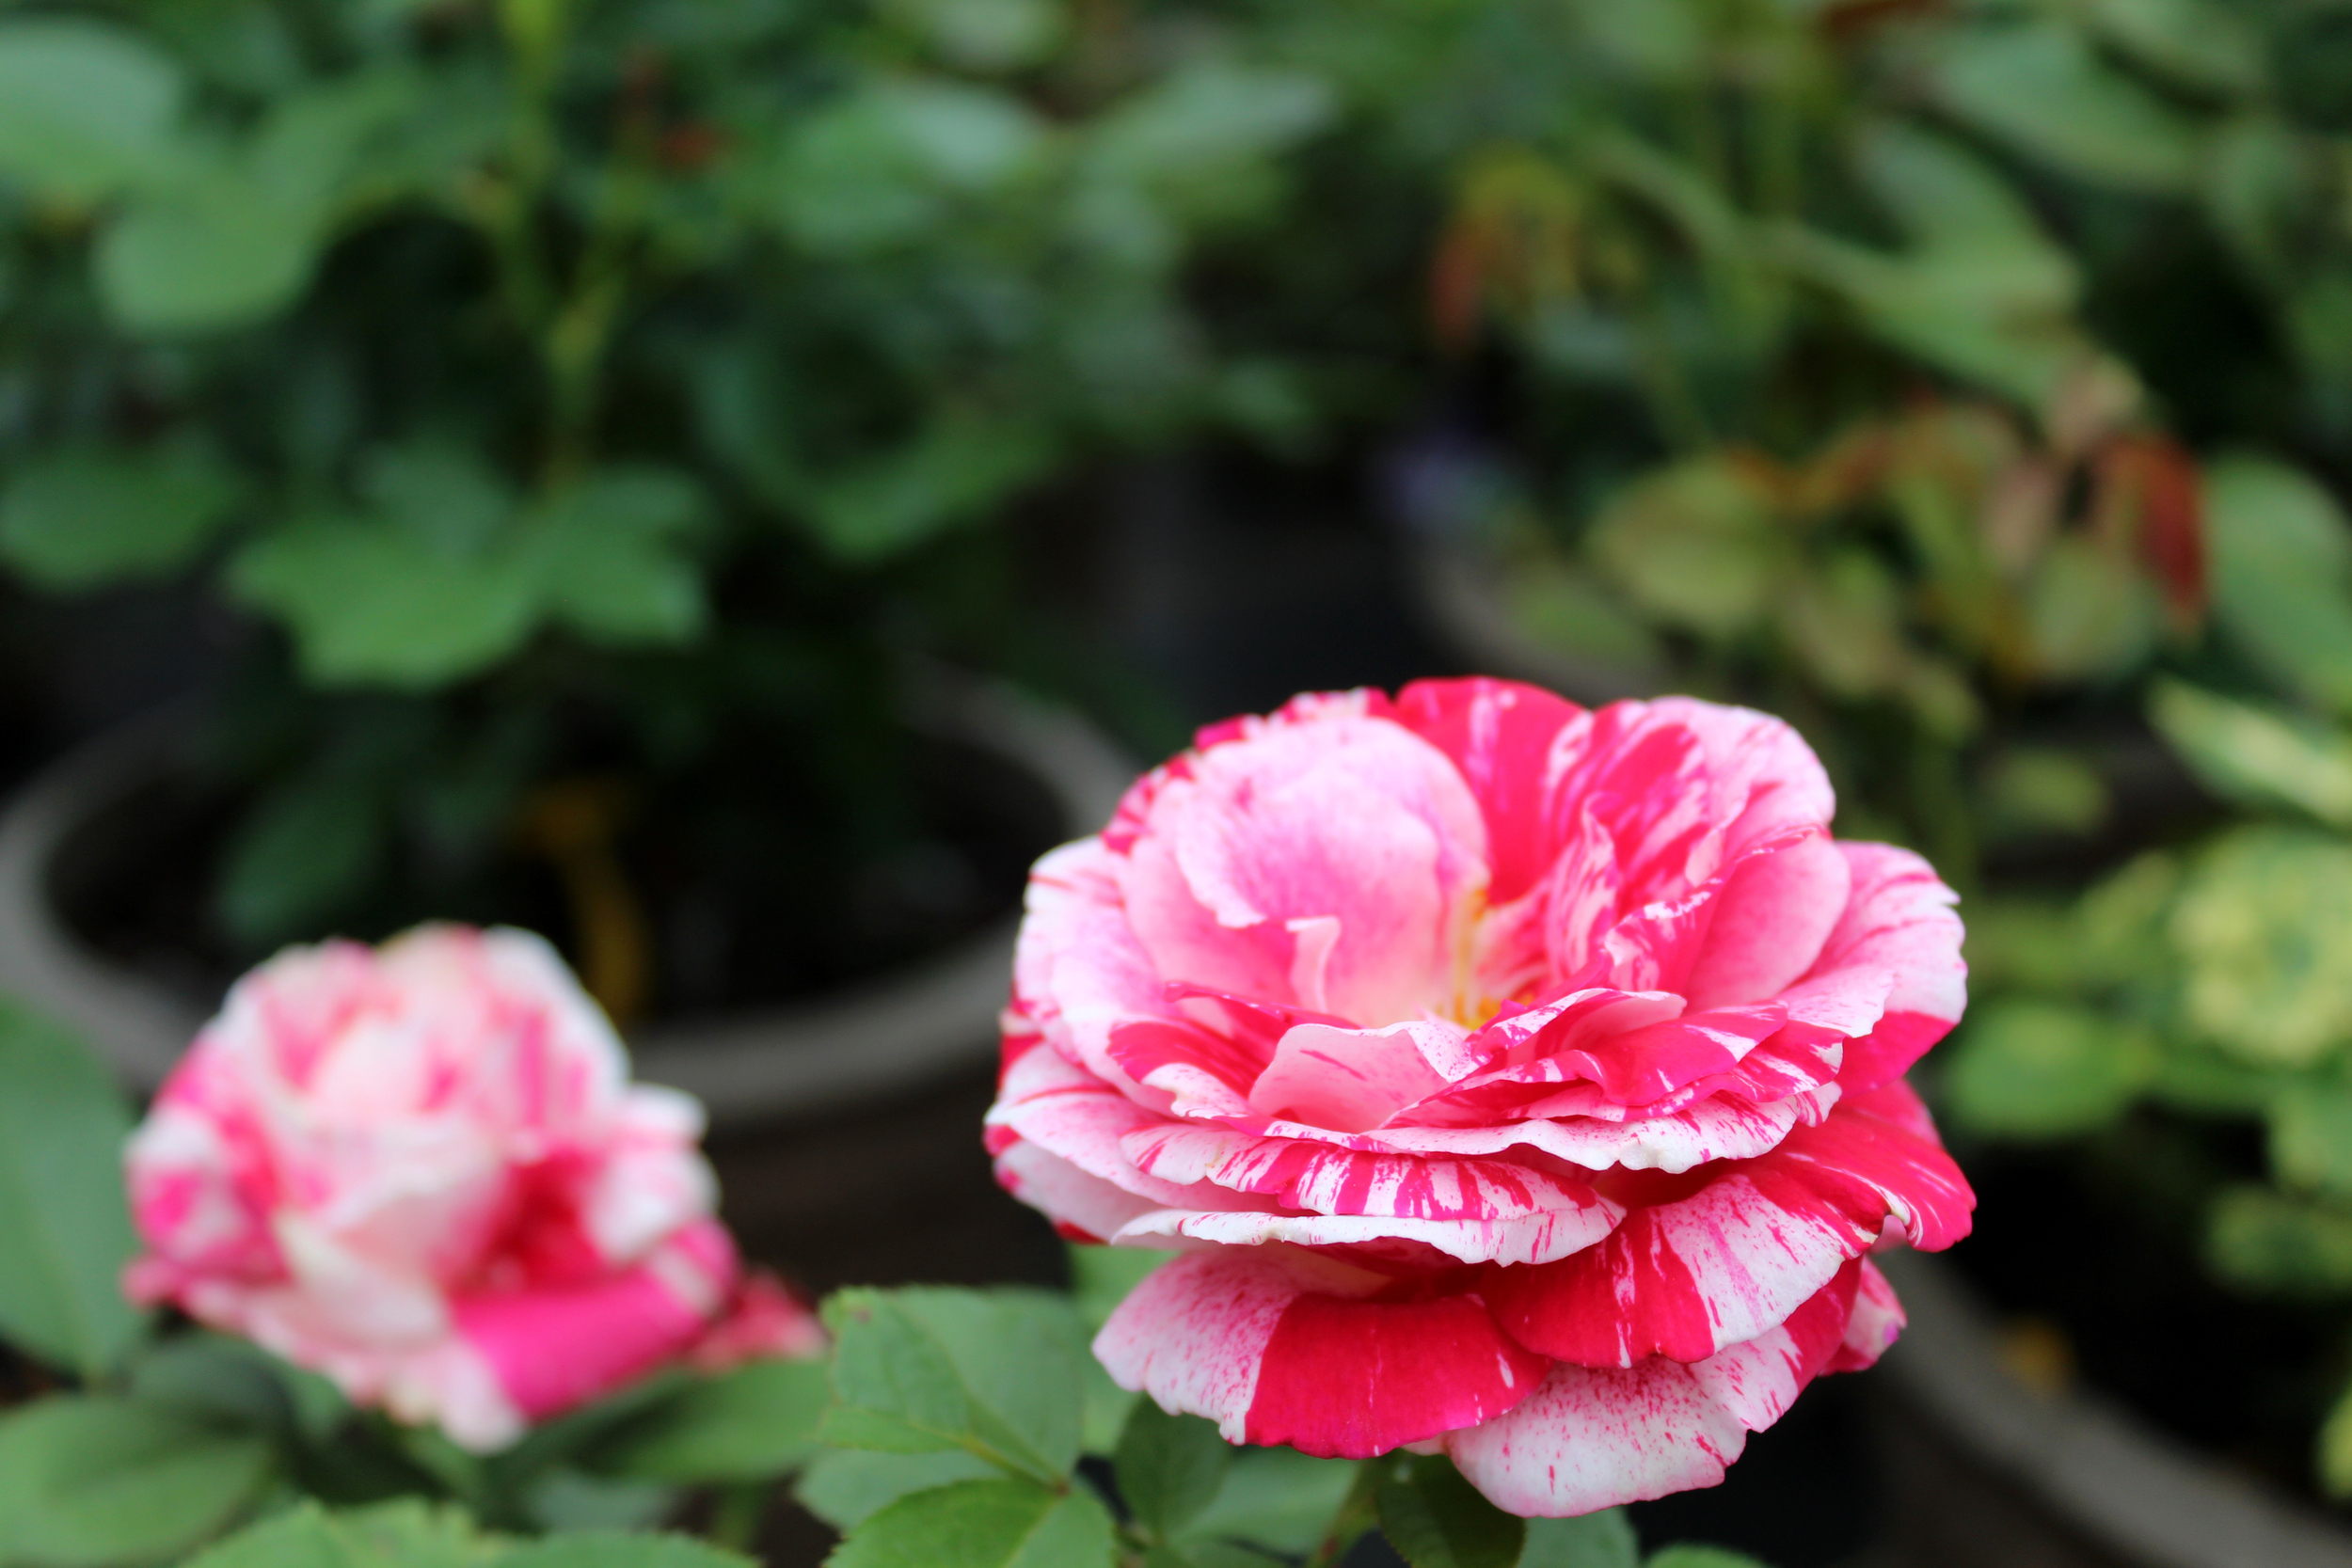 I forget the proper name for this flower. But the man I was chatting with said he just calls it a peppermint rose.